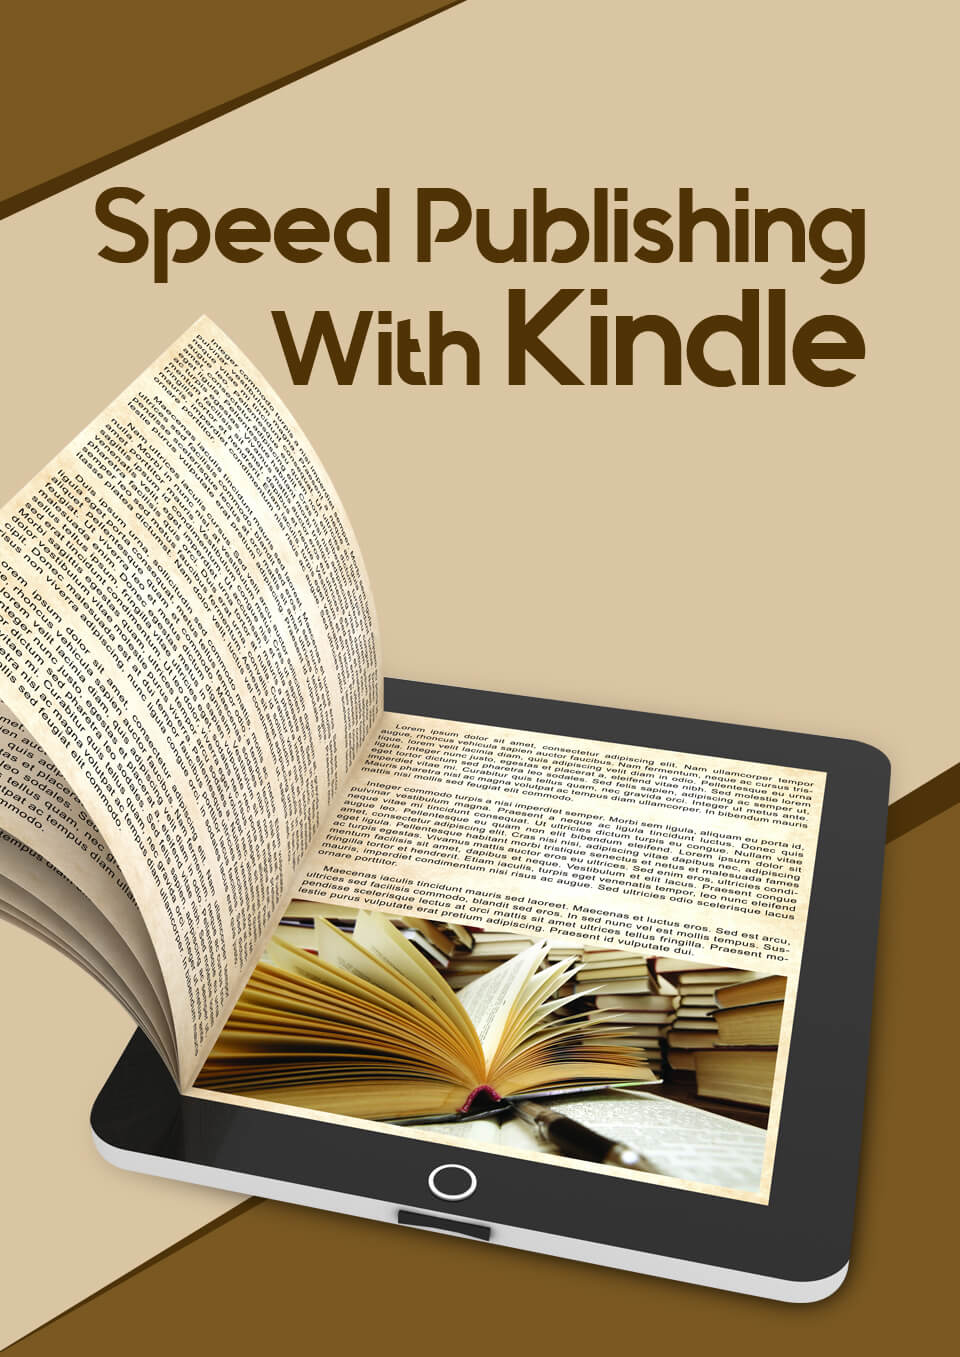 Learn how to Speed Publish with Our Kindle Training Course Get Your Copy Now!